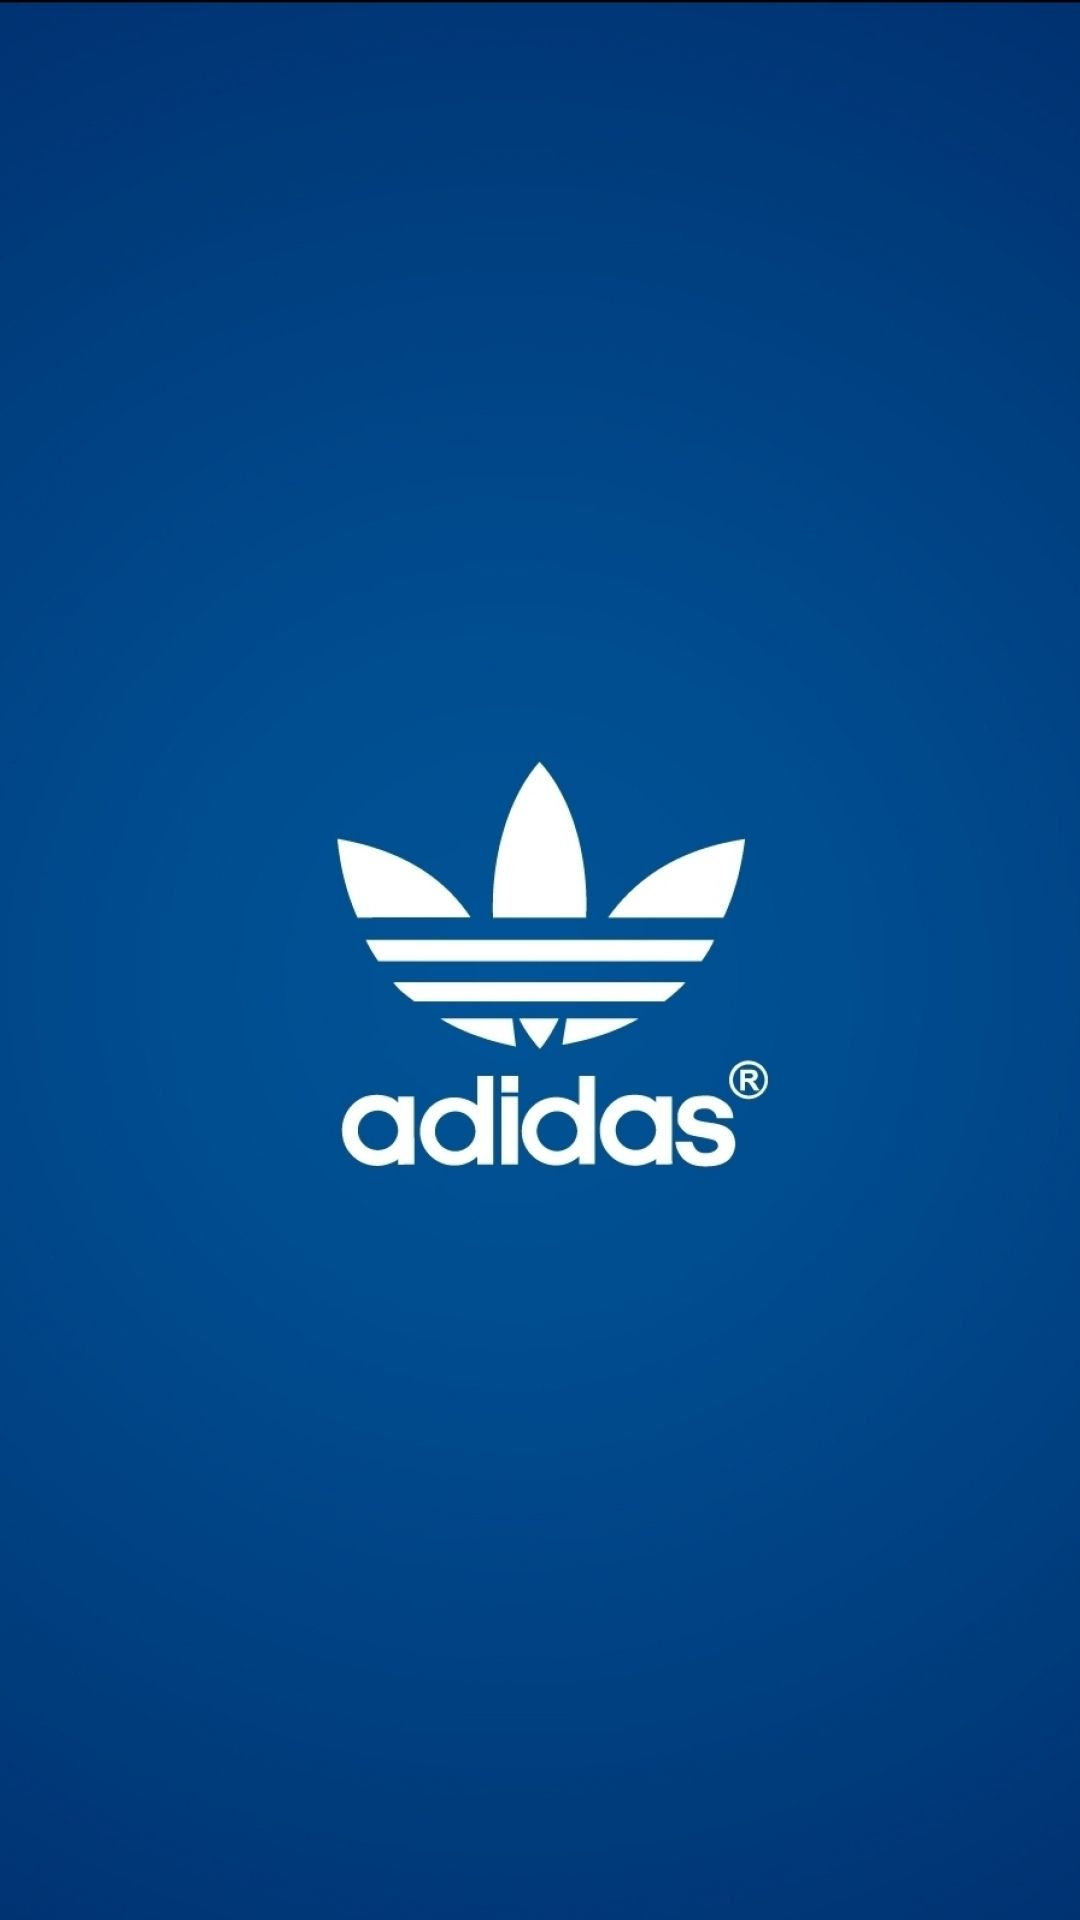 Download this Wallpaper iPhone 5 - Products/Adidas (1080x1920) for ...